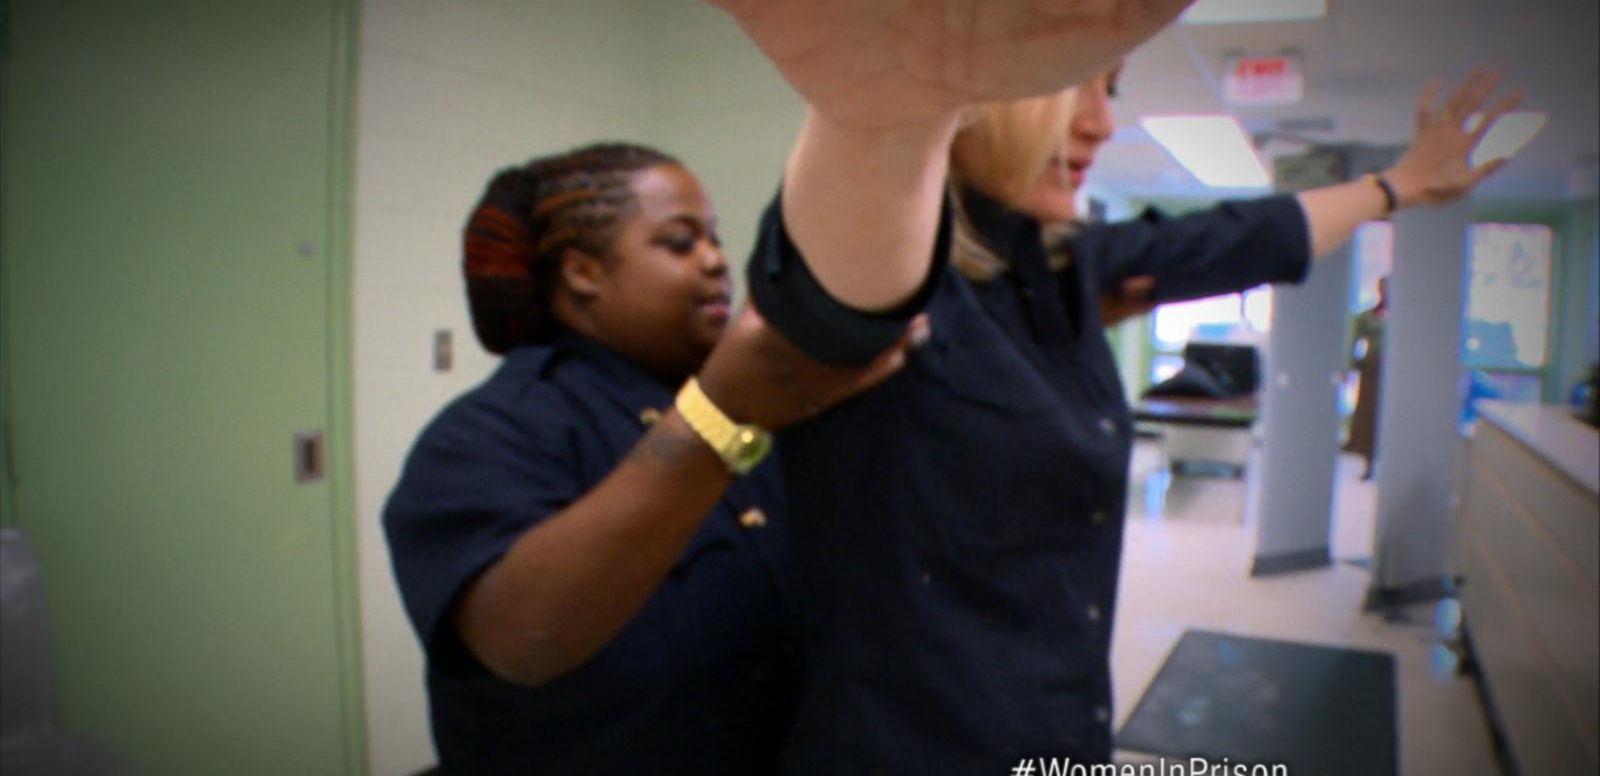 An Inside Look at the Nation of Women Behind Bars